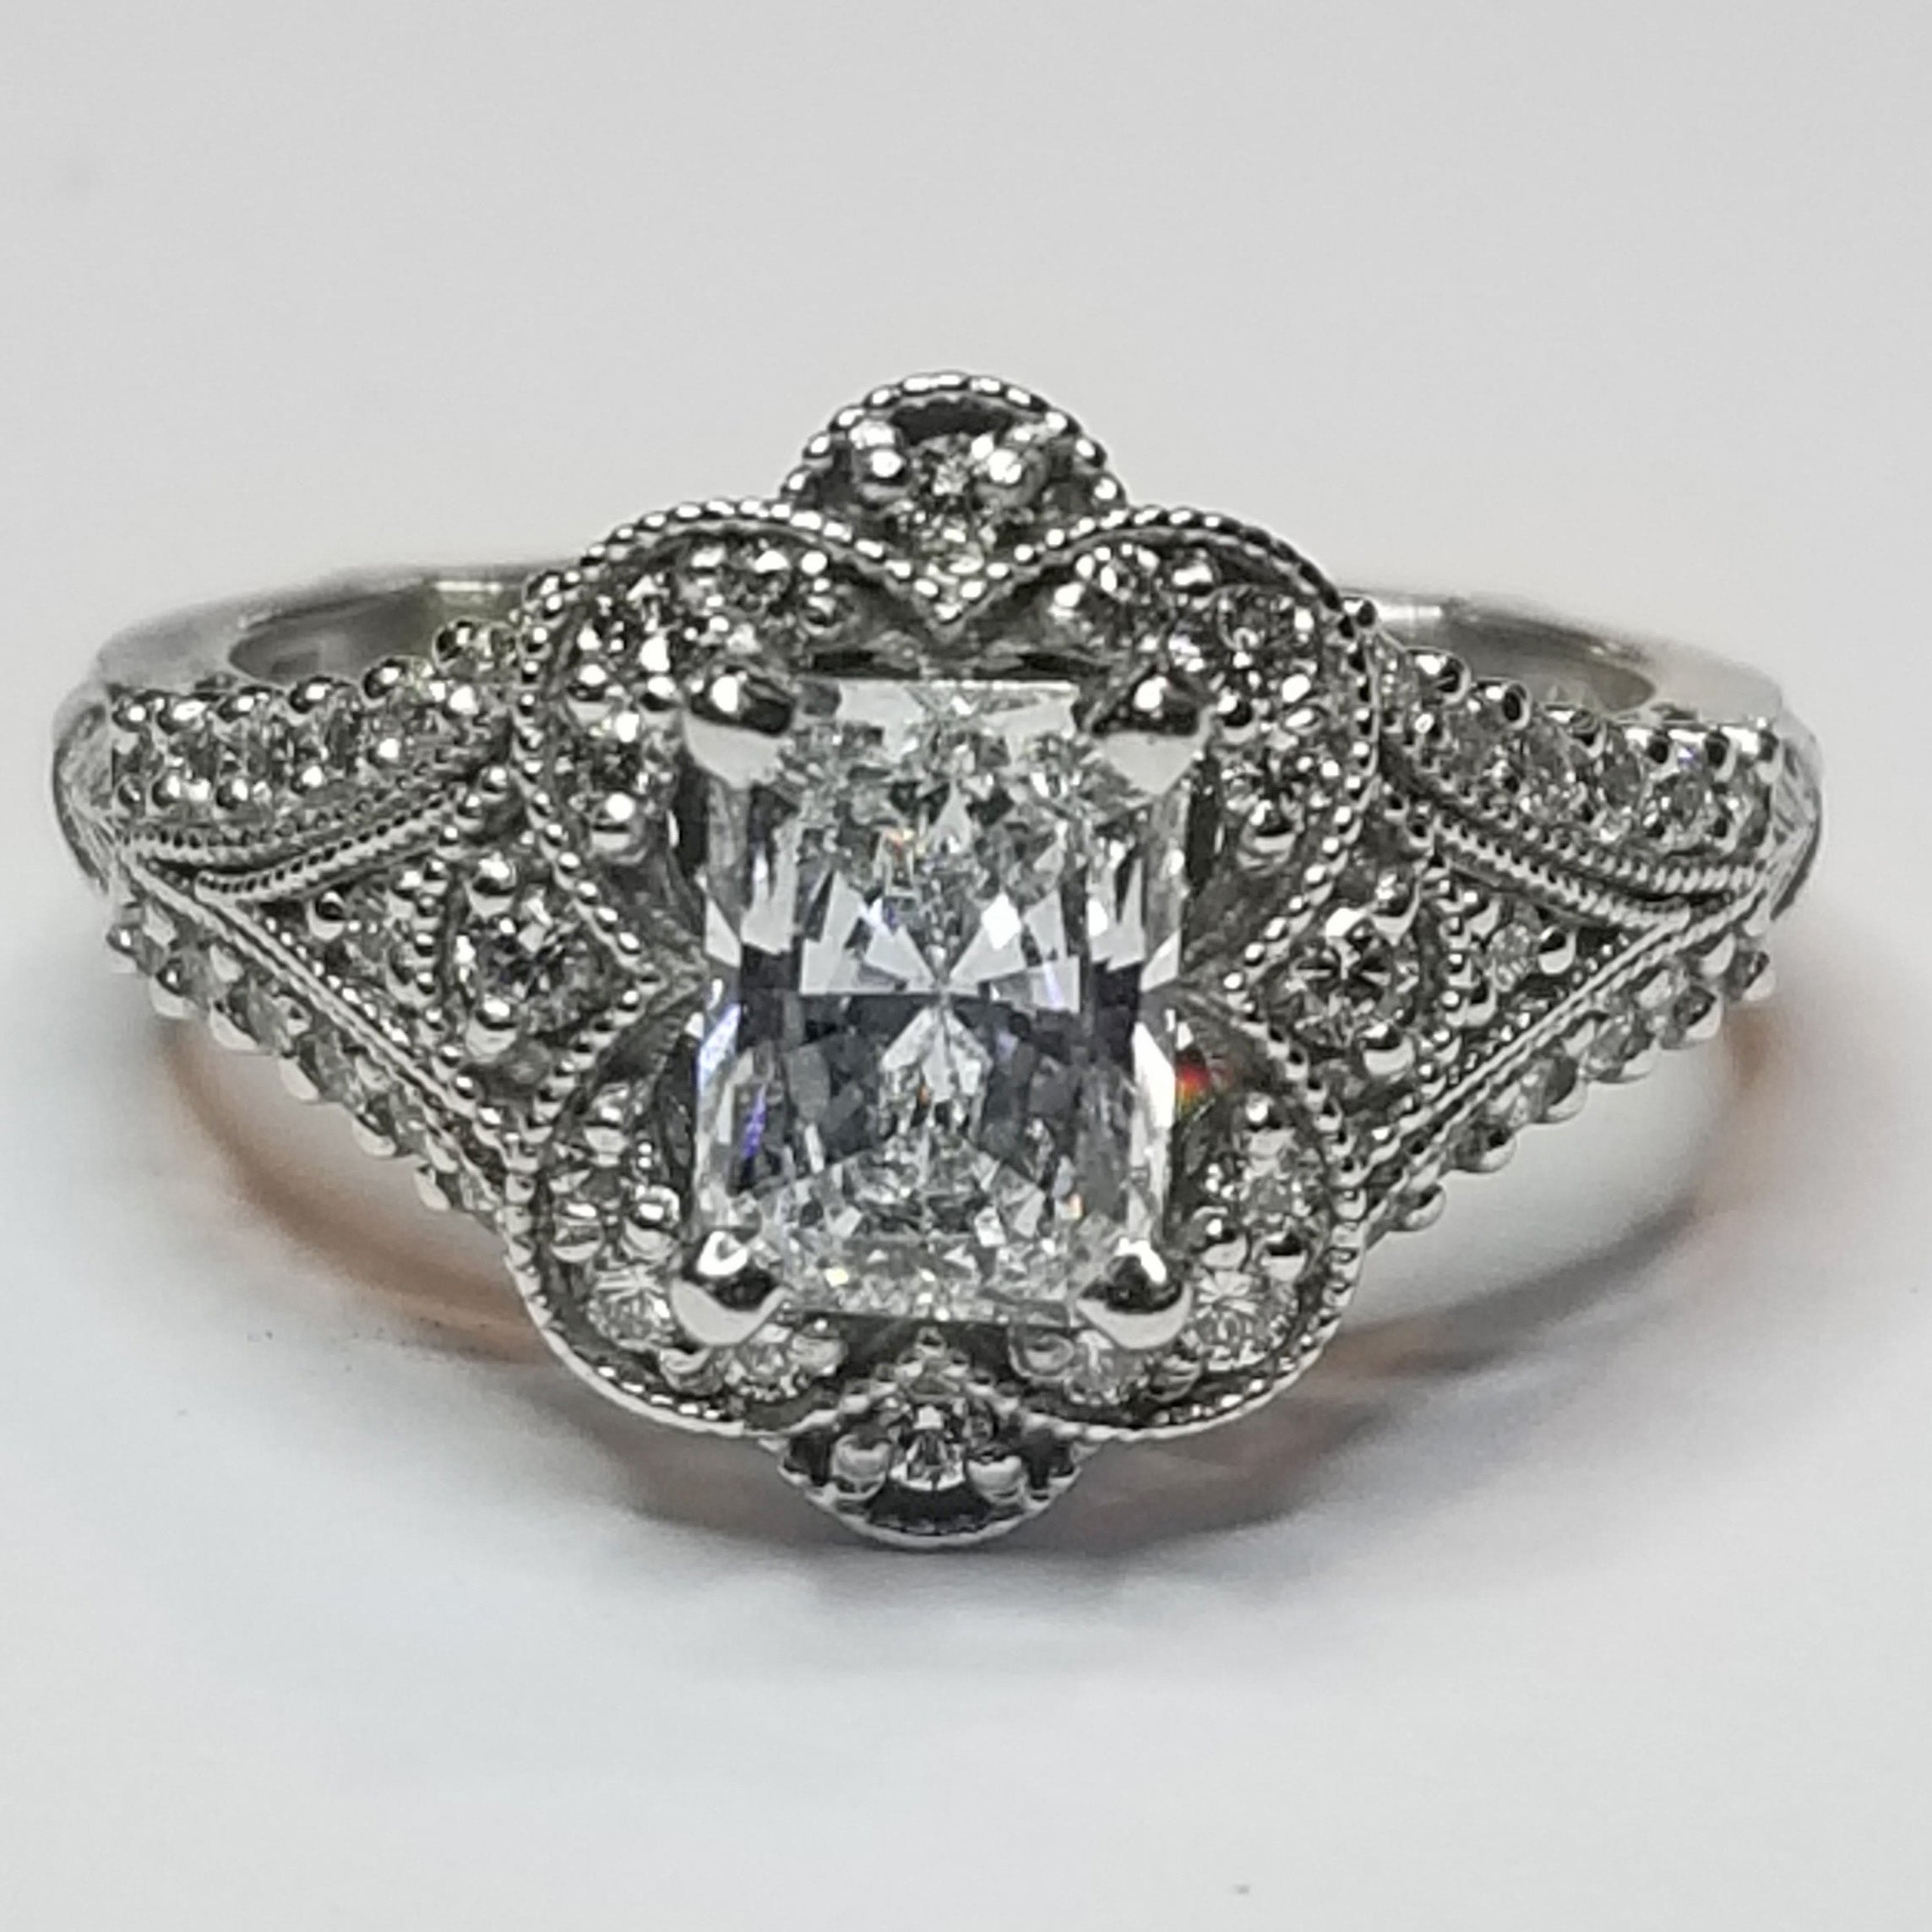 Ready to ship radiant-cut diamond engagement ring in 14k white gold